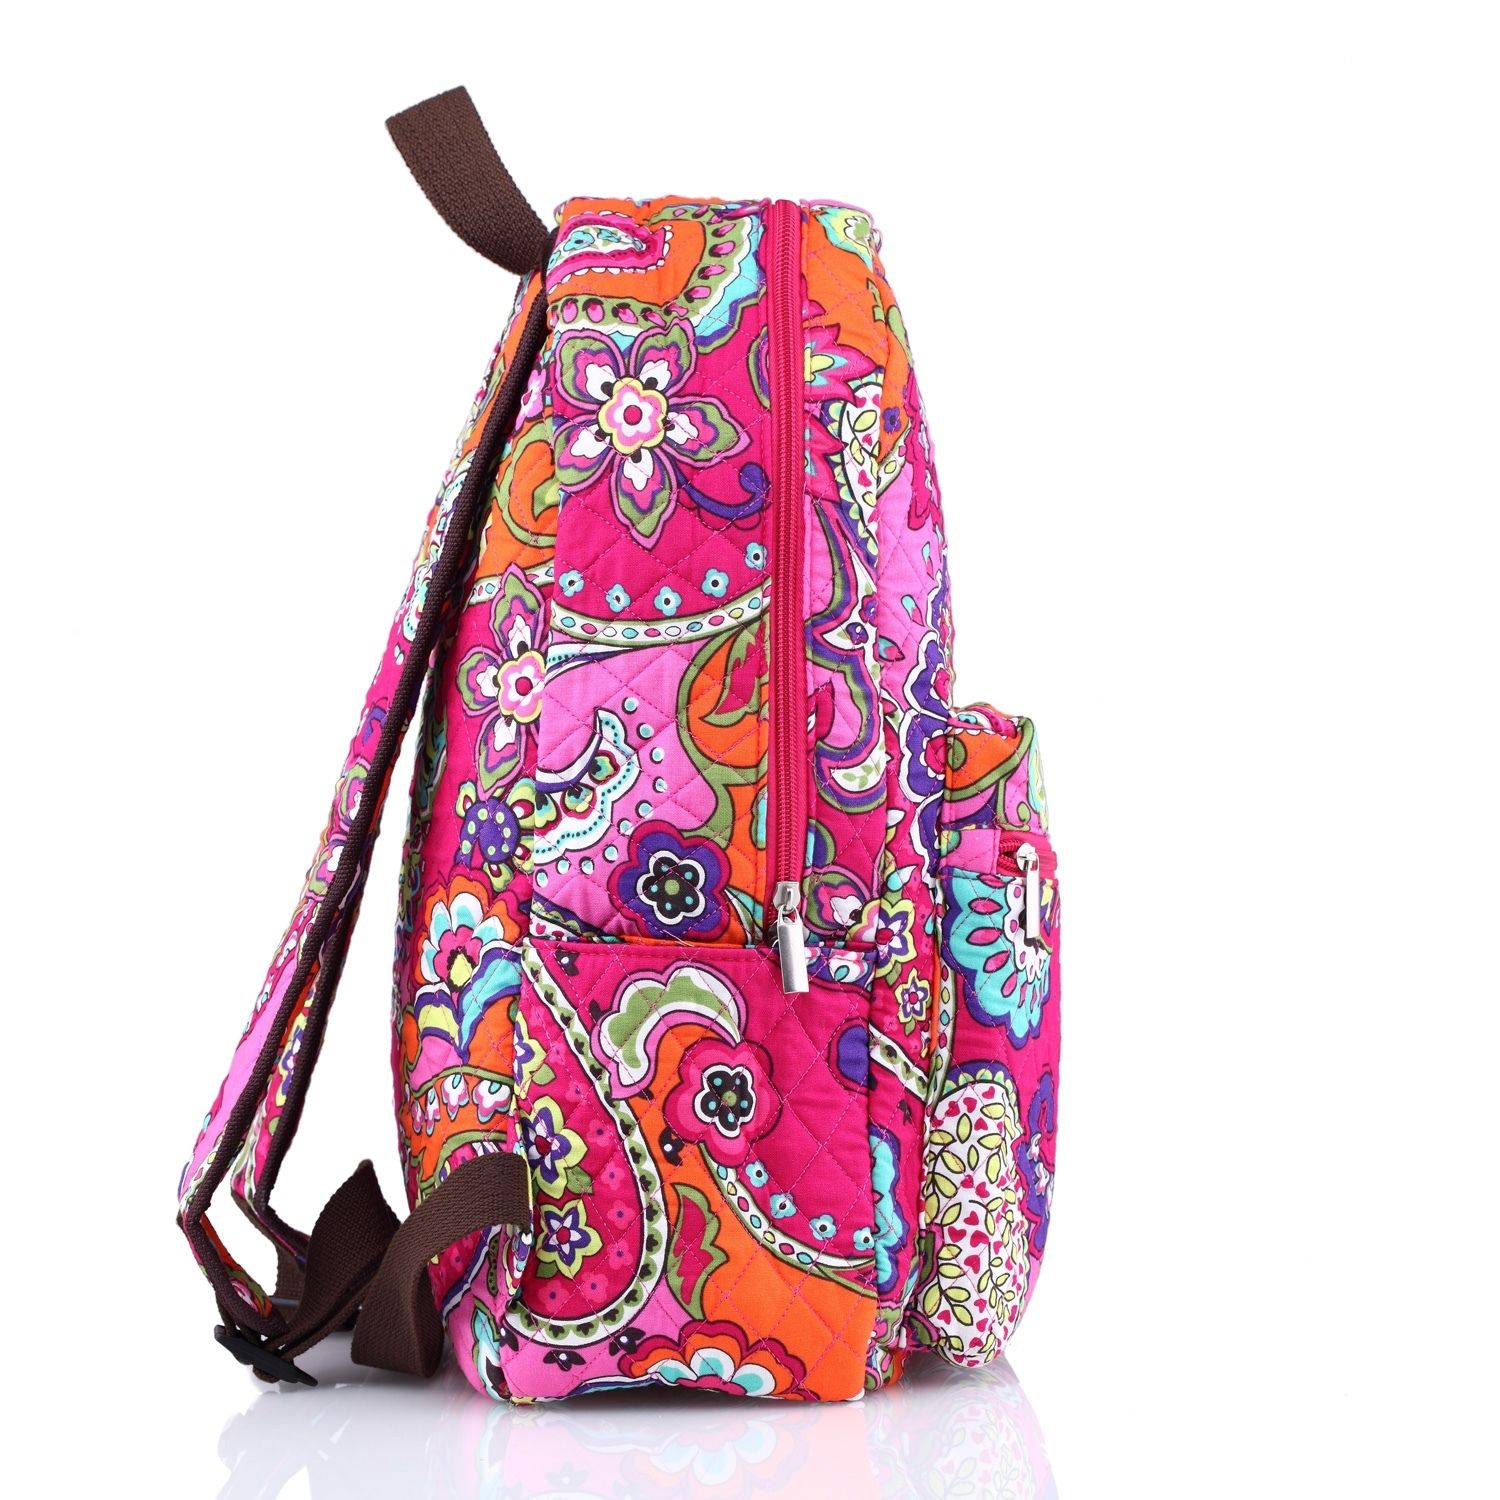 Quilted Cotton Floral Zippered School Campus Backpack Baby BagPlum Crazy Pattern